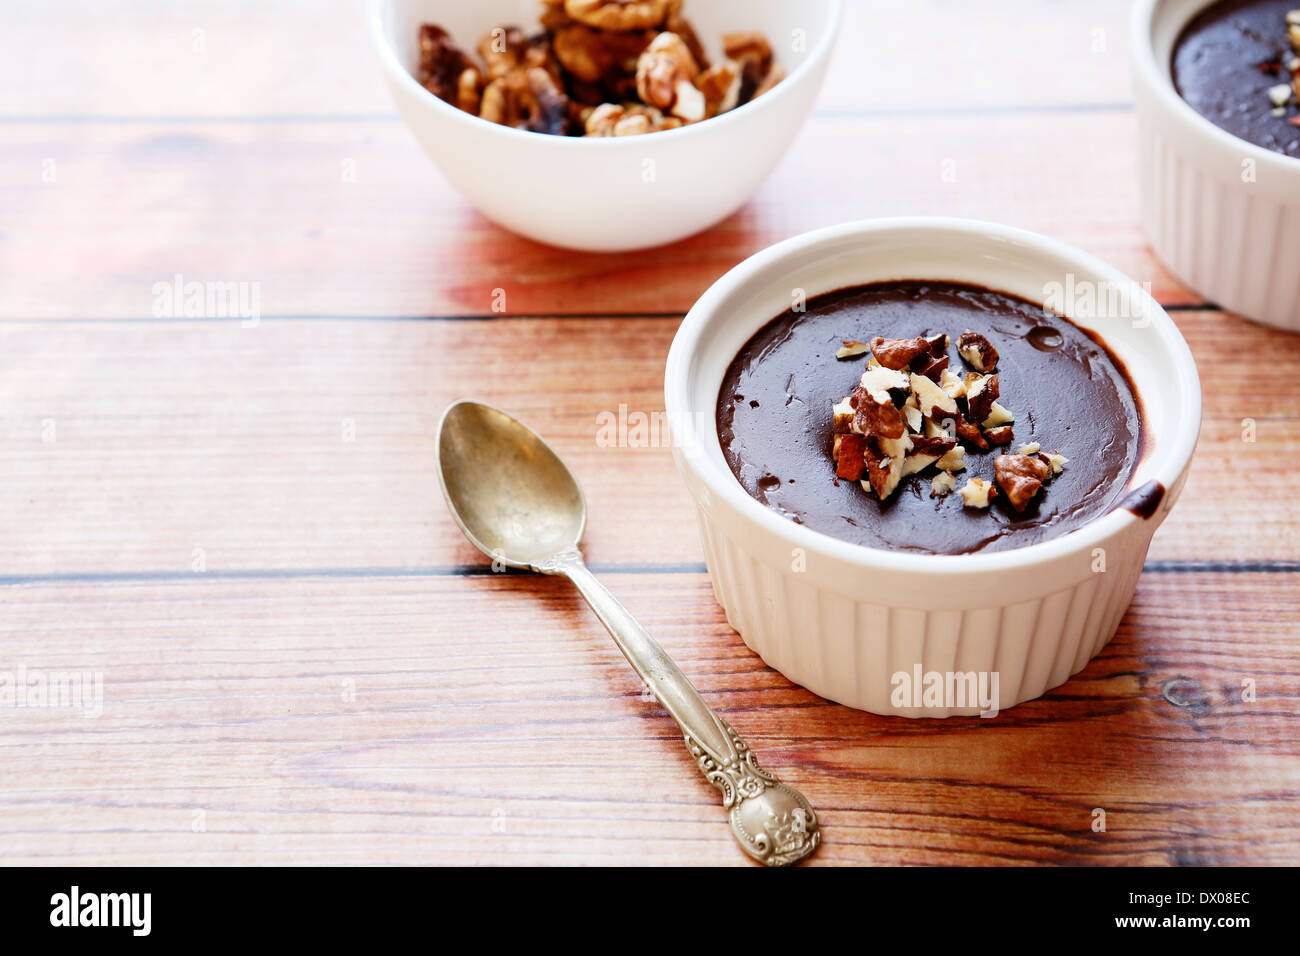 chocolate mousse with walnut pieces, food closeup - Stock Image